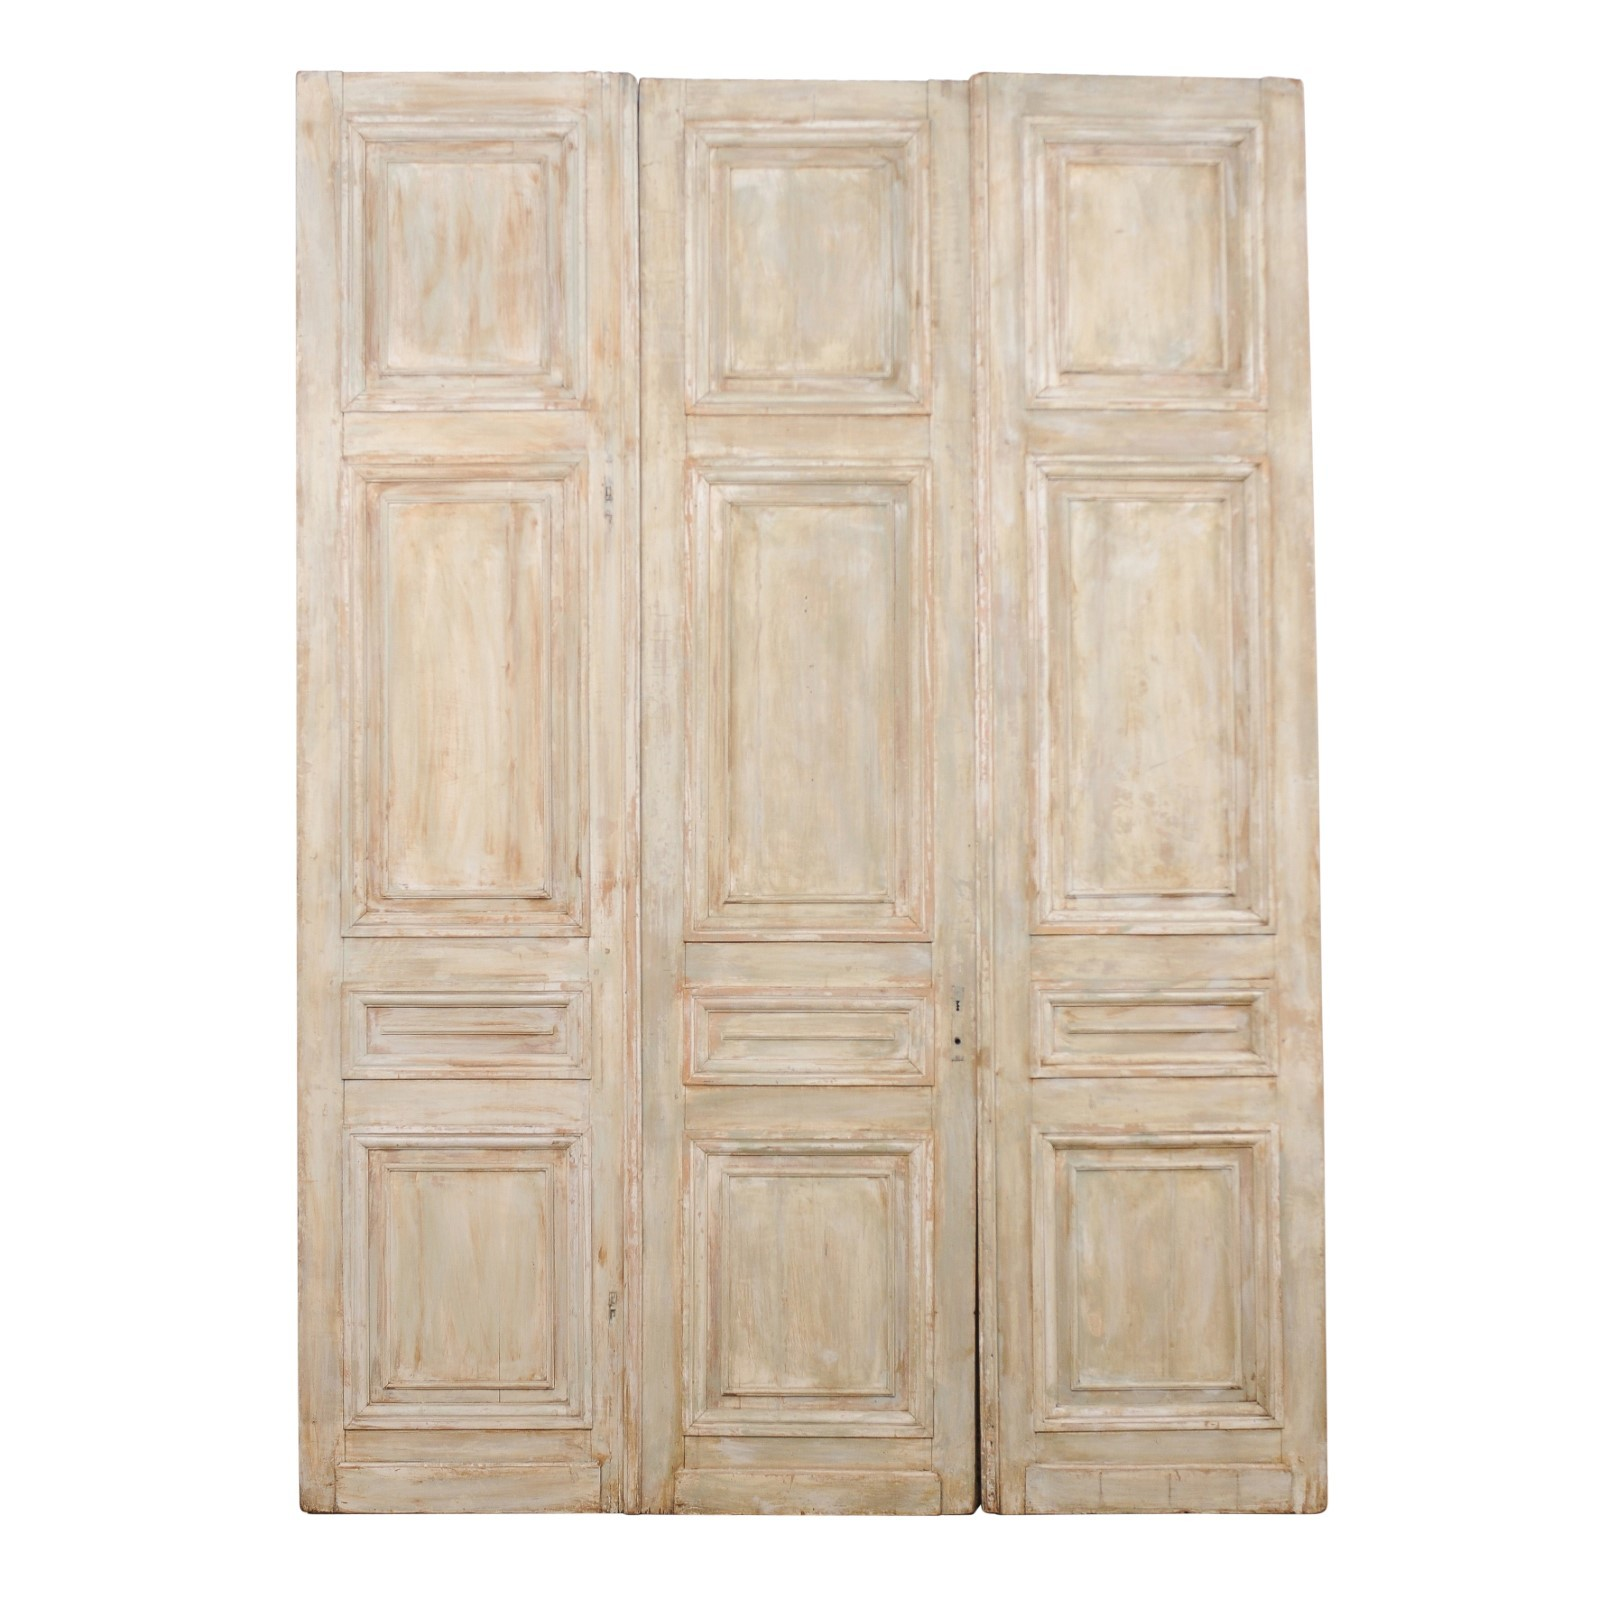 Set of 19th C. French Doors, 10+ ft